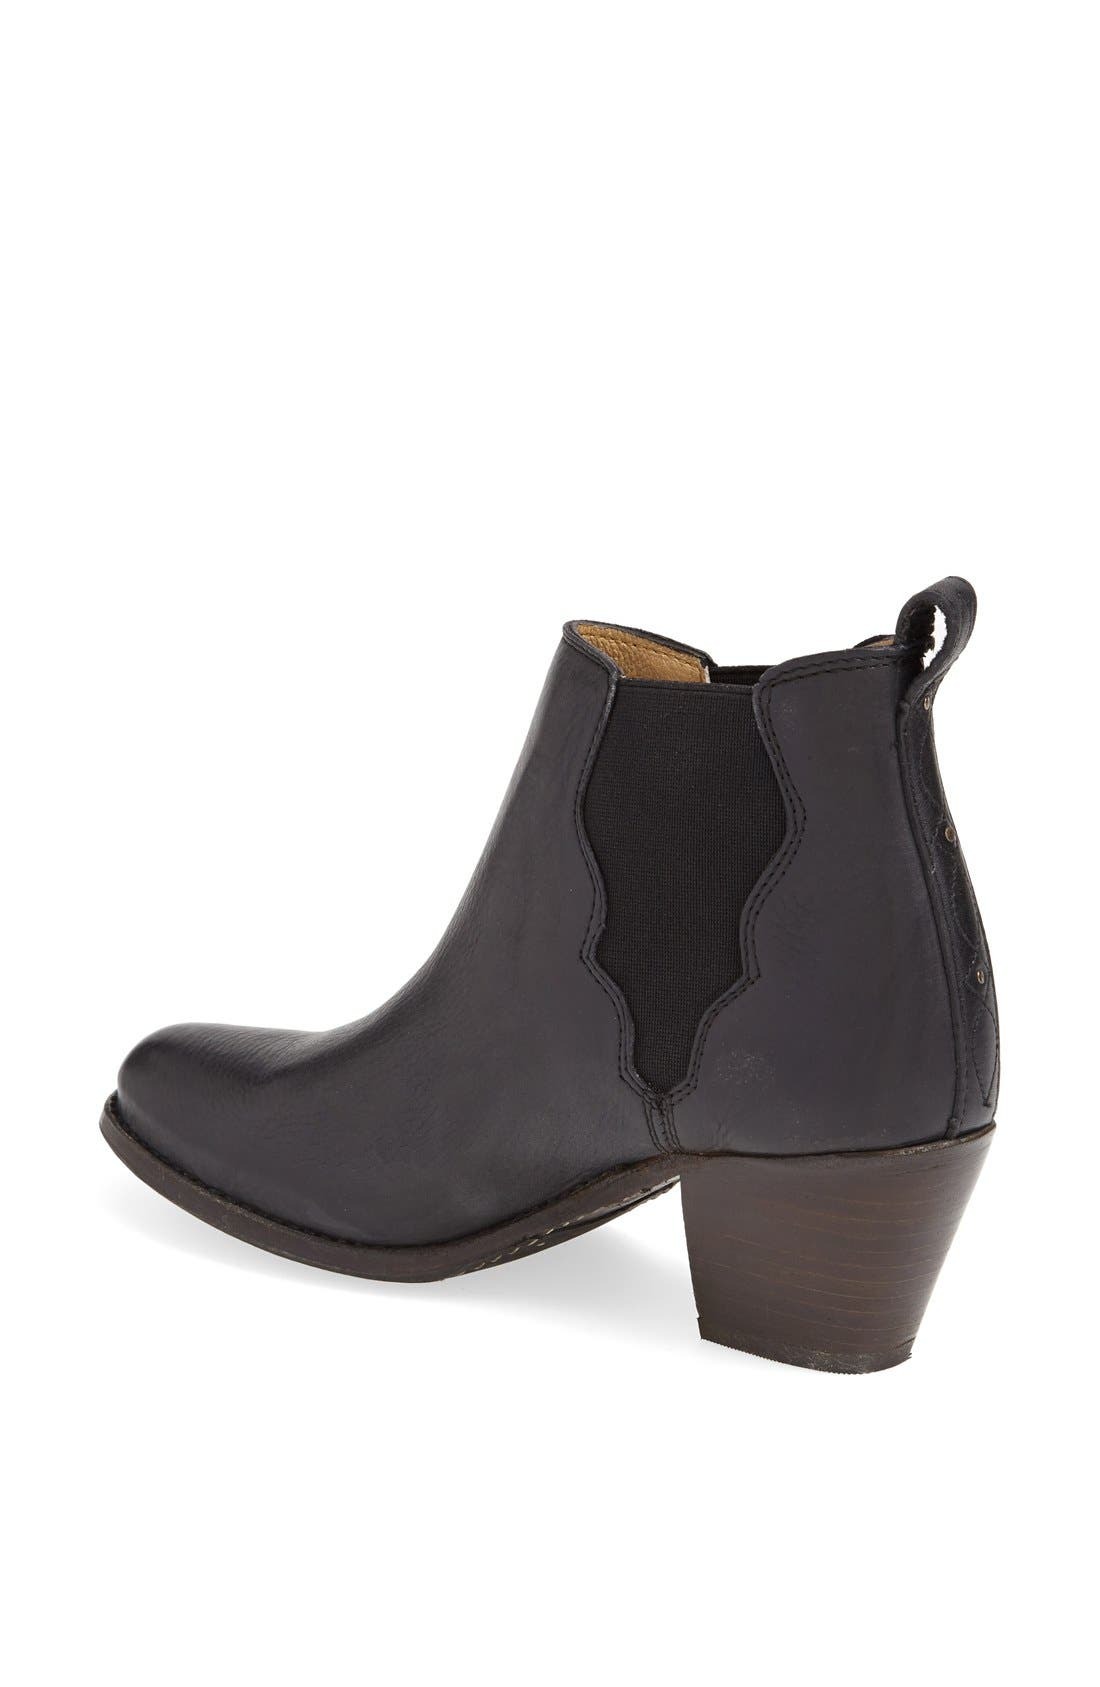 Alternate Image 2  - Frye 'Jackie' Leather Ankle Boot (Women)